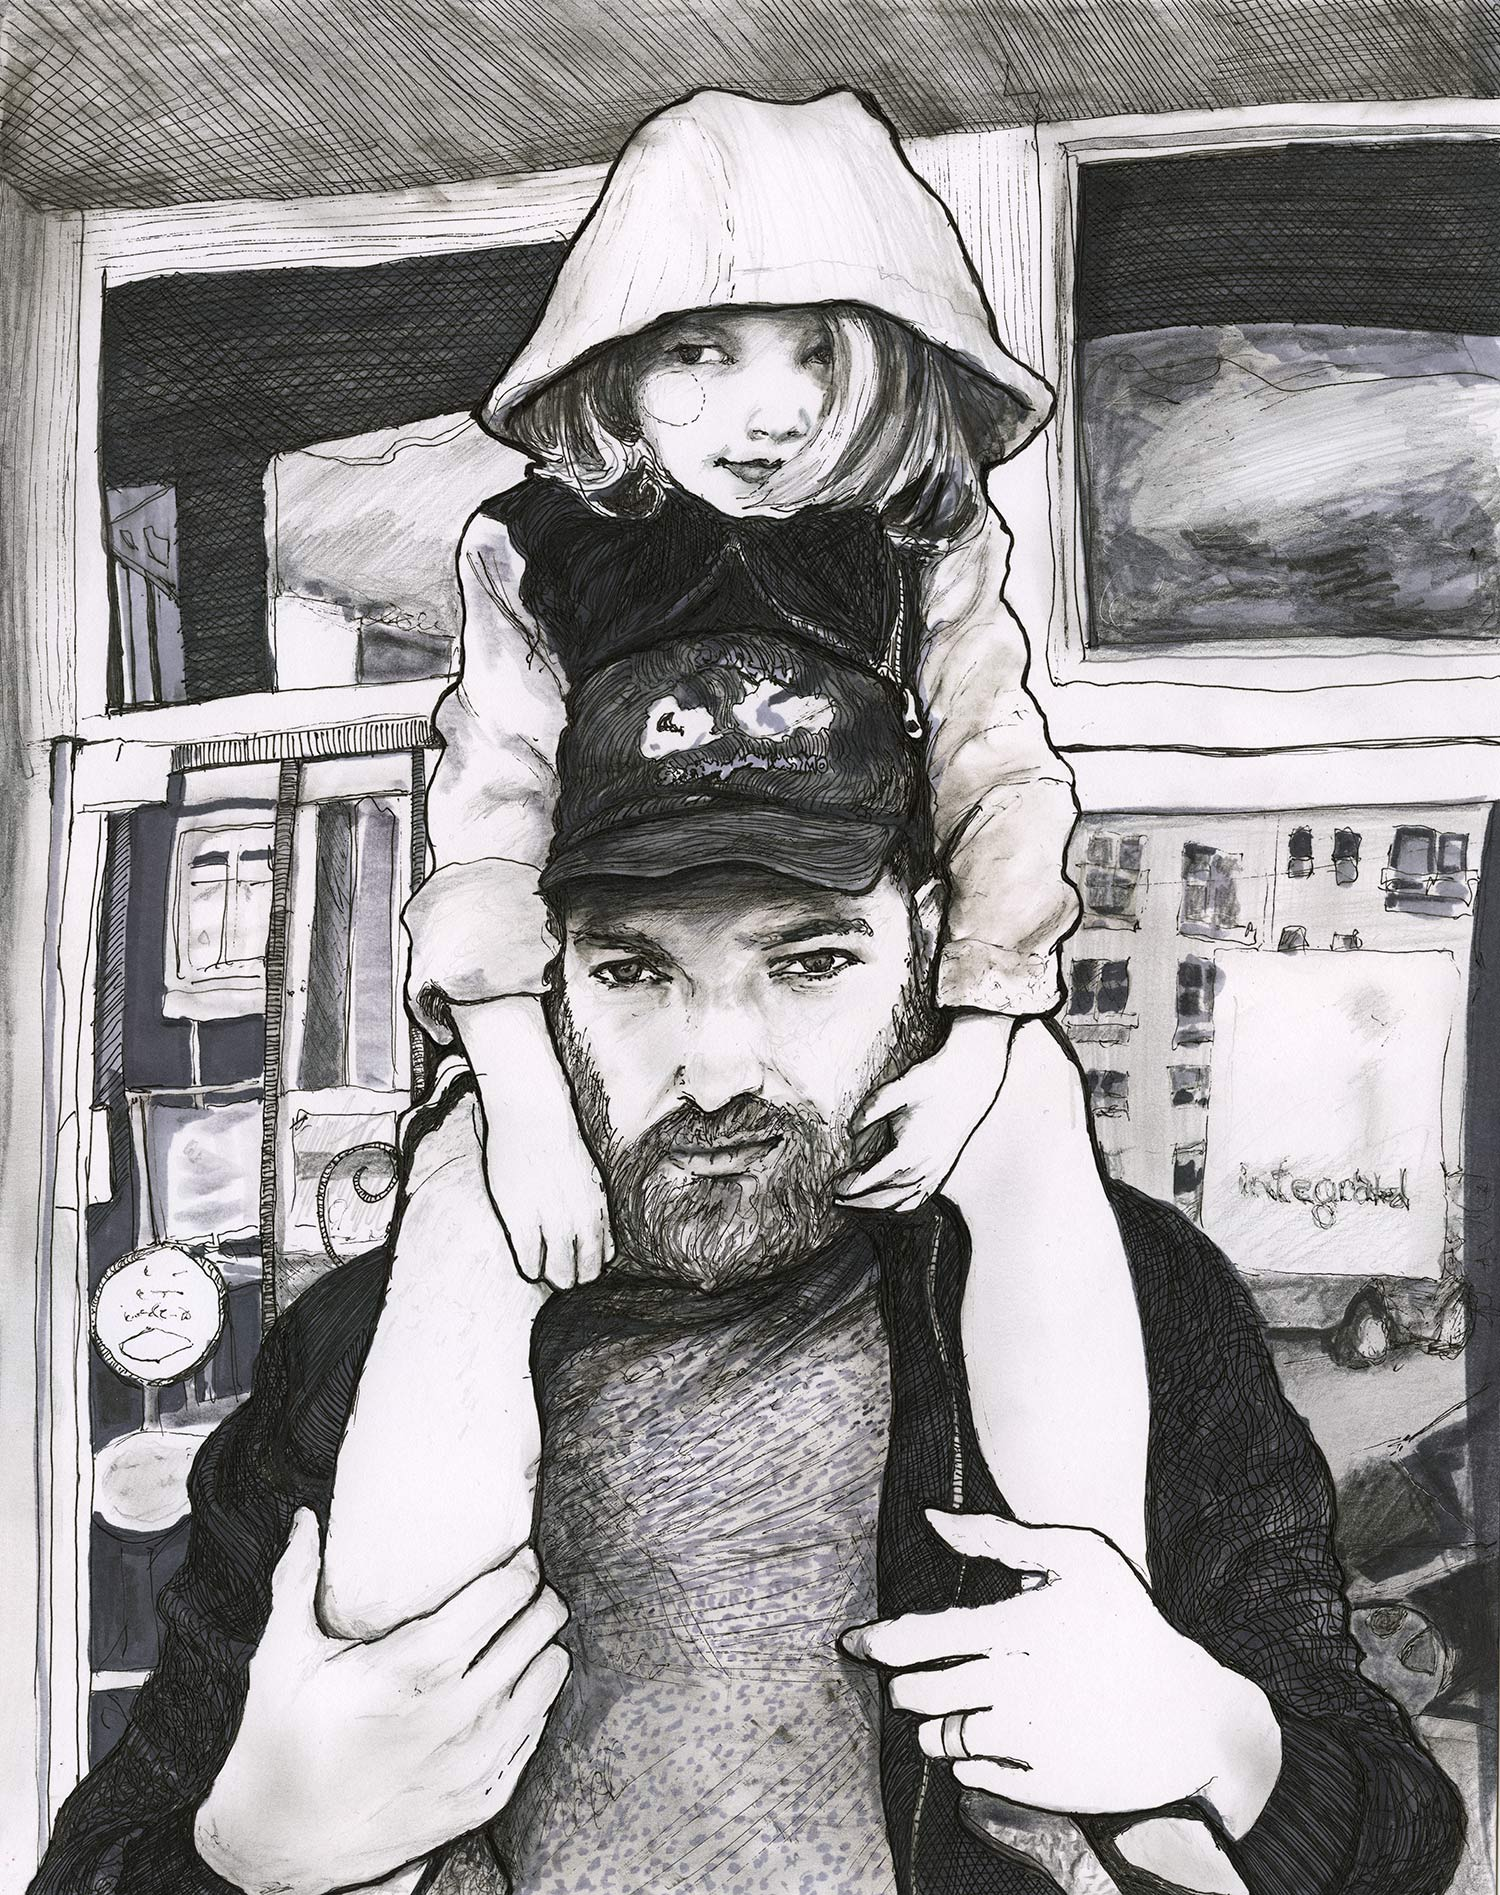 Pen and ink black and white illustration of Darren king and Scarlett King by artist Danny Roberts